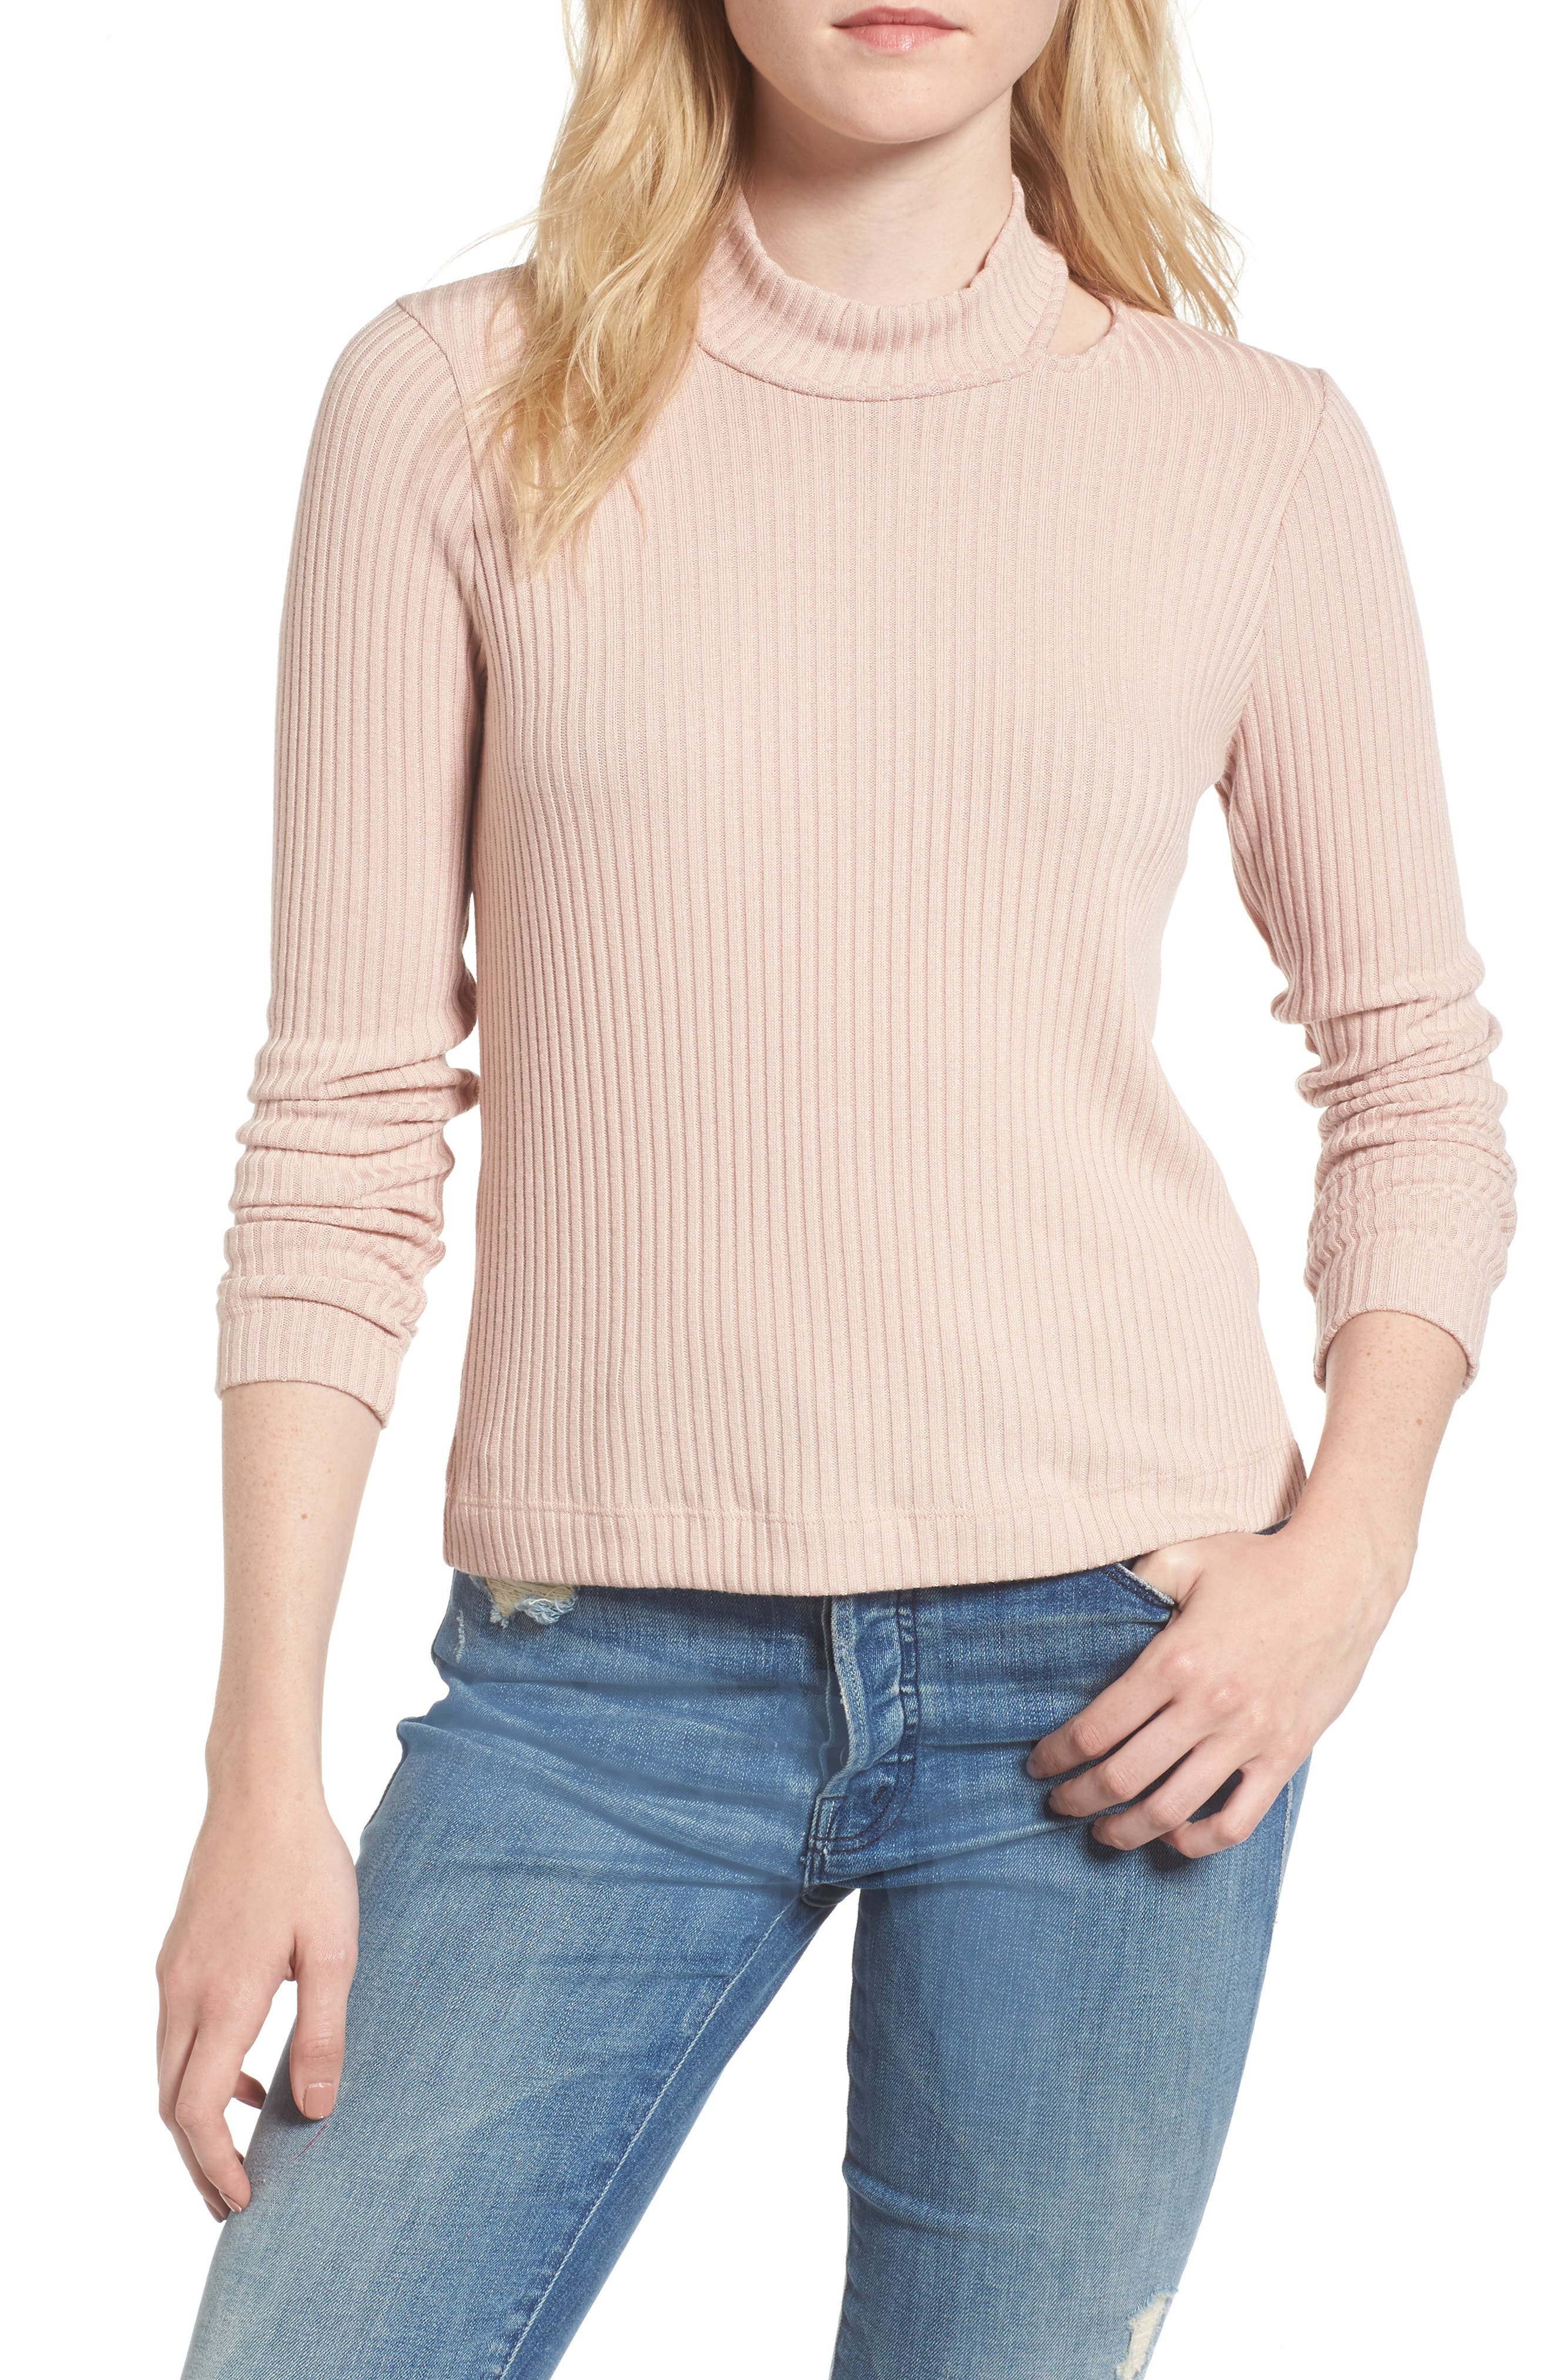 Sylvie Ribbed Mock Neck Sweater,                             Main thumbnail 1, color,                             Pink Beige